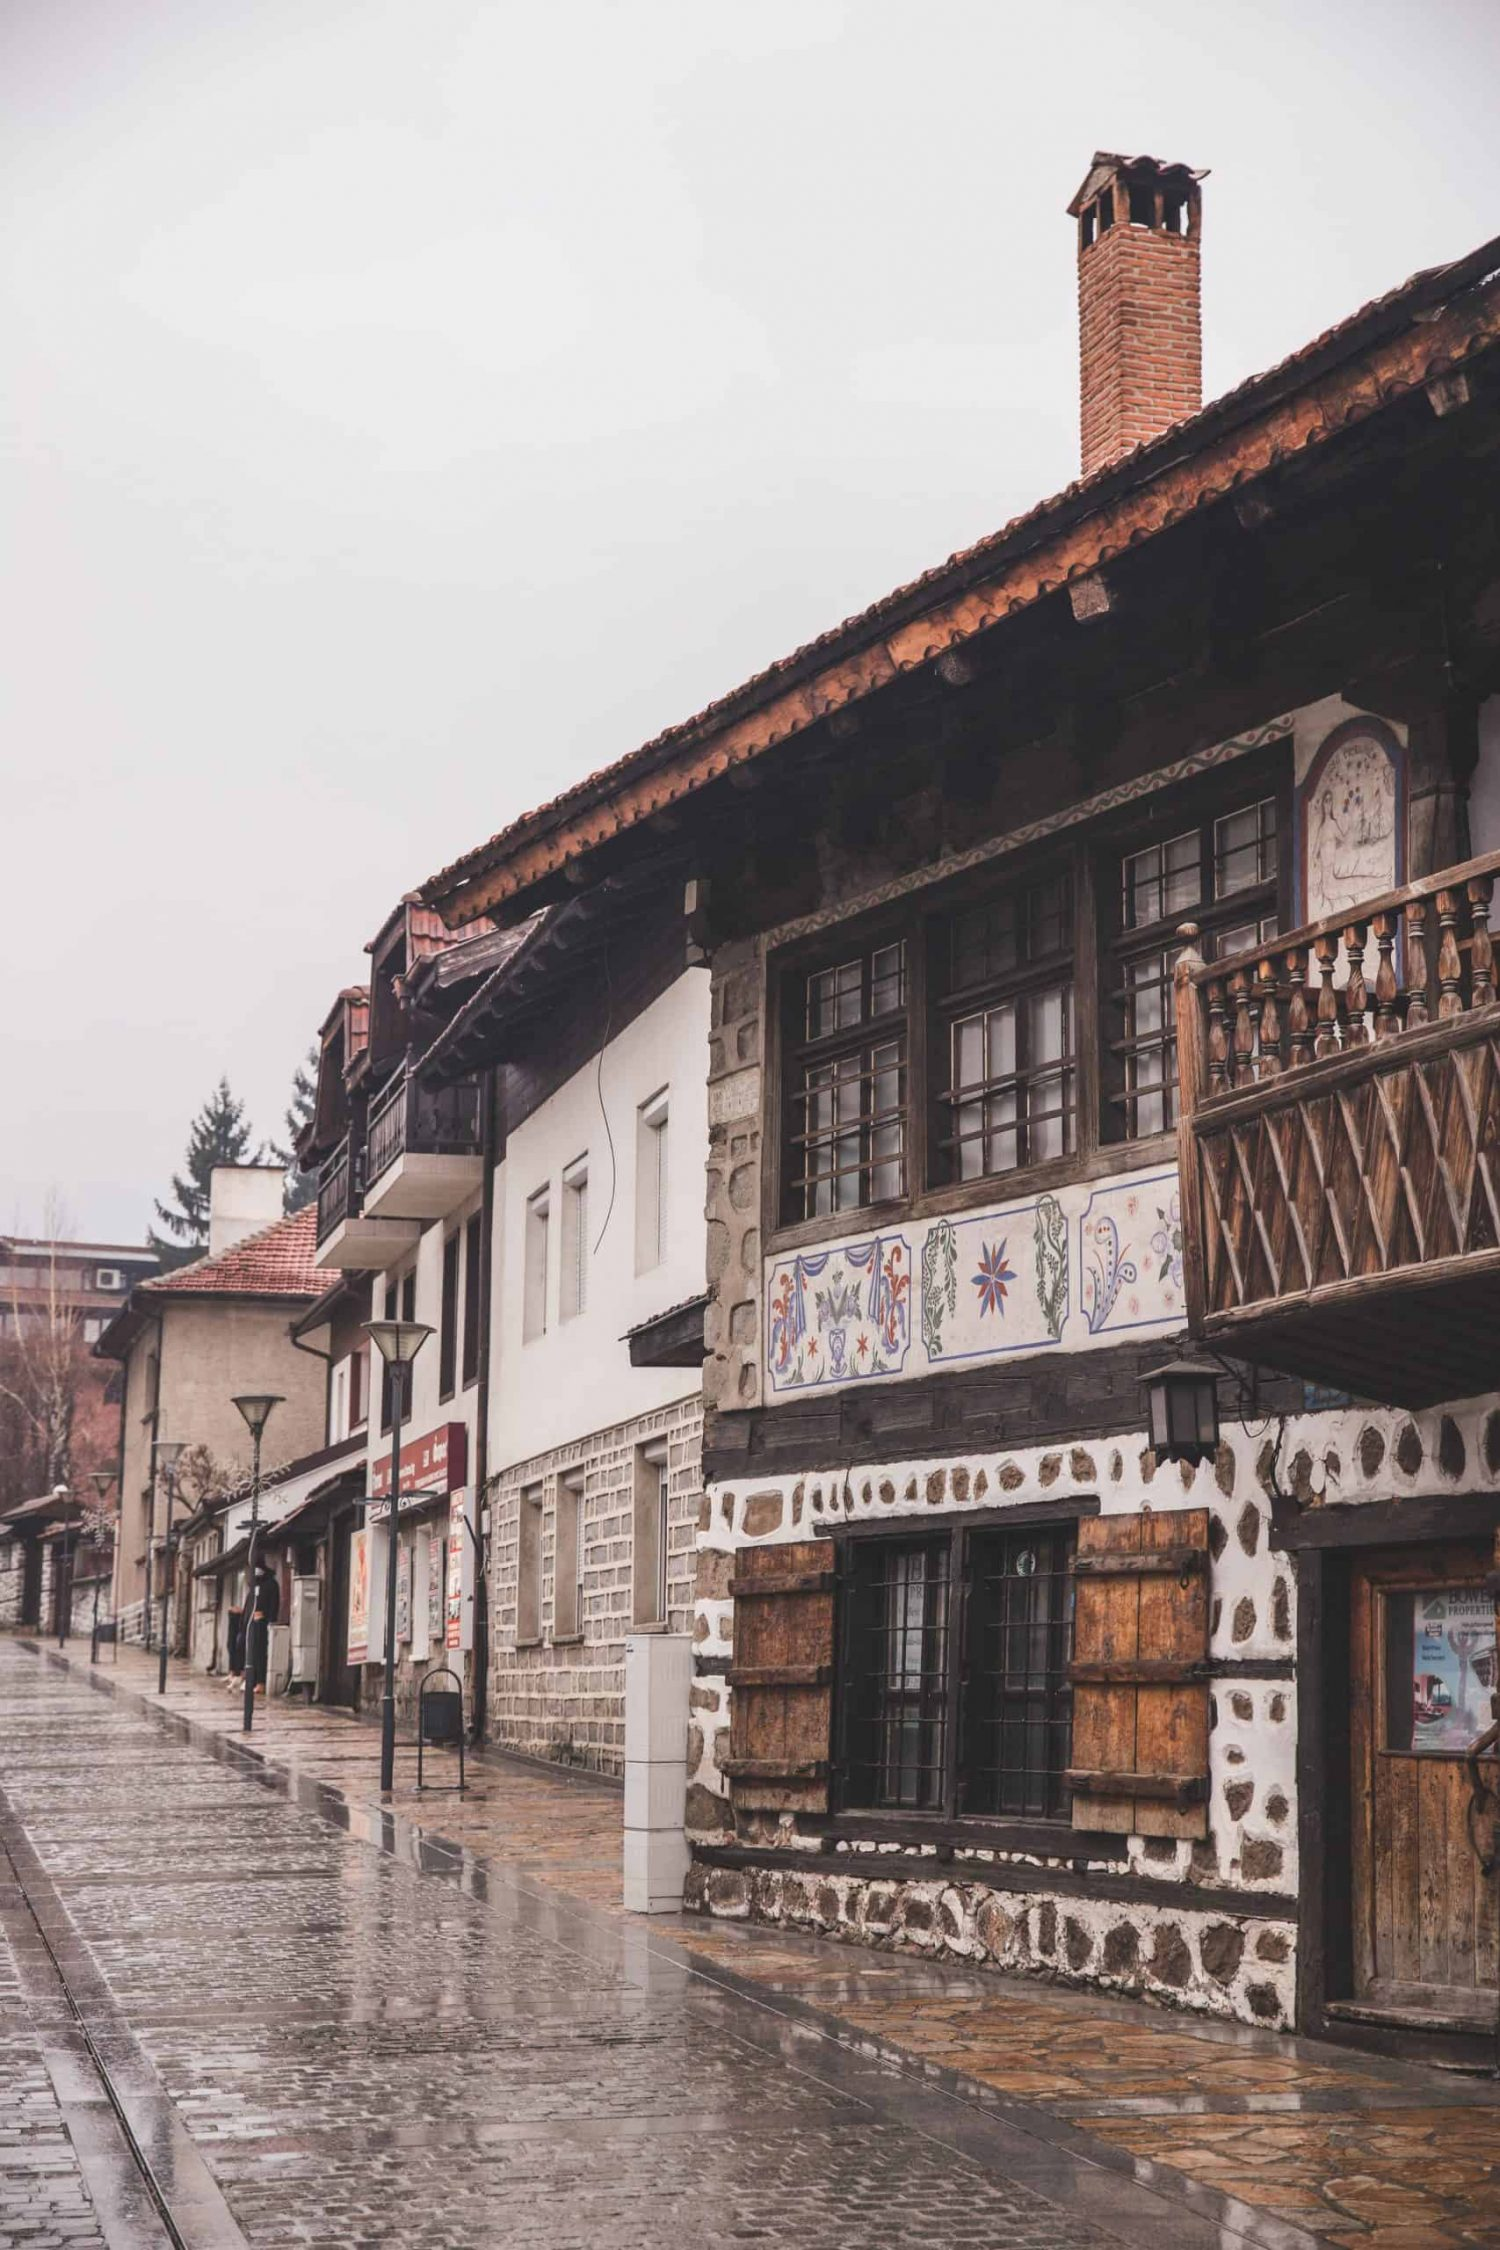 The road up Pirin Street in Bansko's Old Town has cobblestone streets and old stone and traditional Bulgarian buildings.